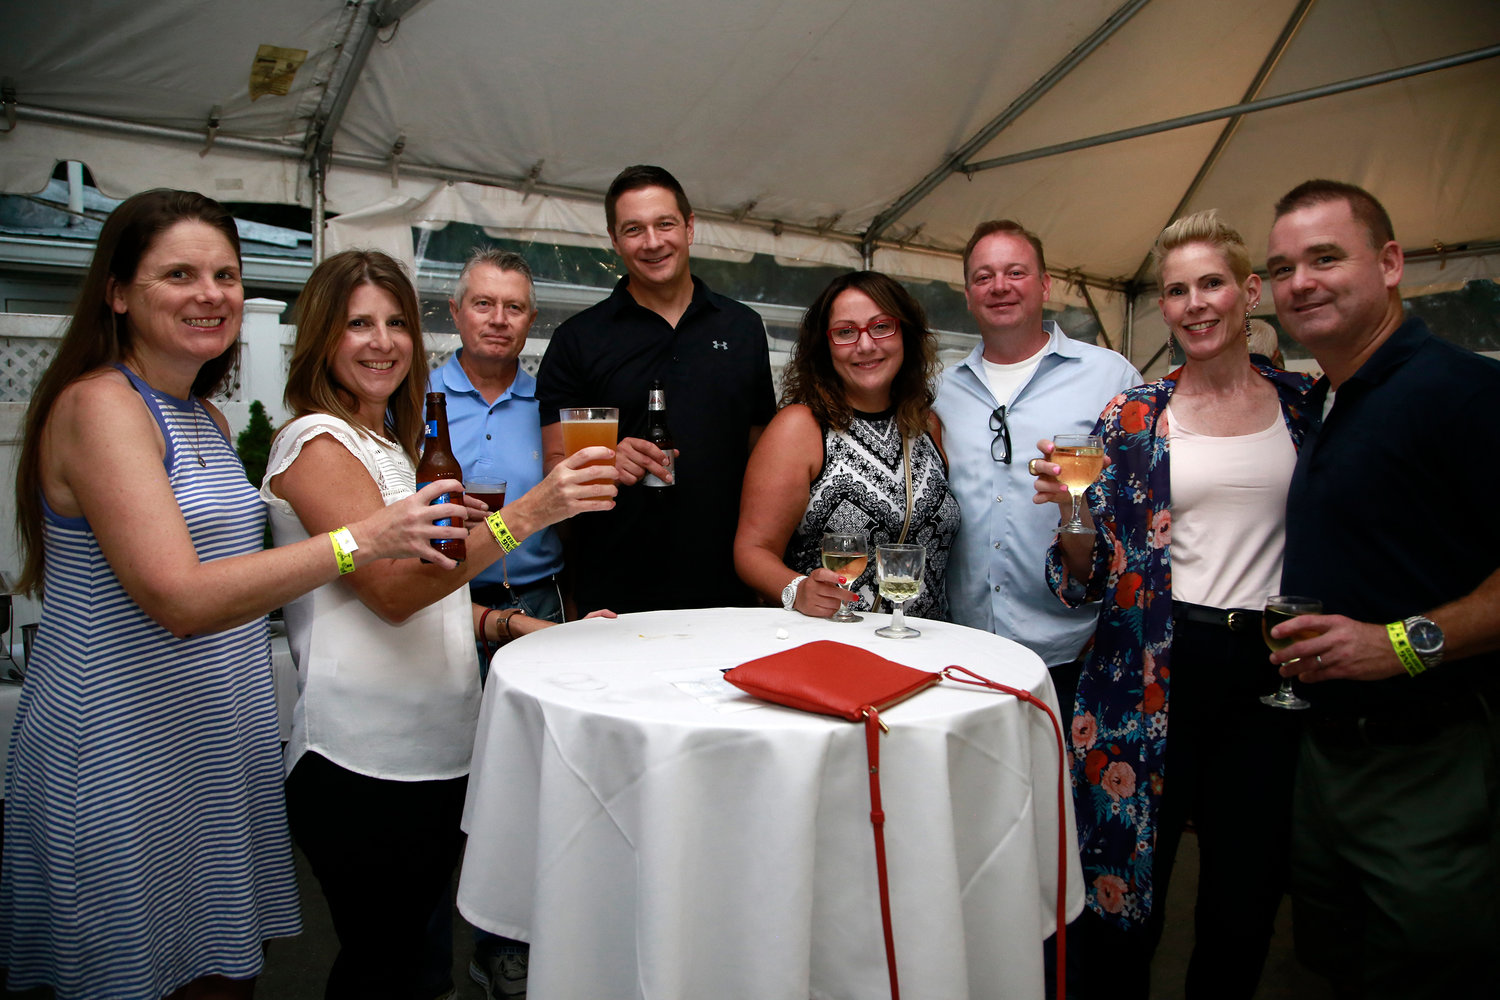 Dawn O'Brien, far left, Jennifer Prizzi, Village Justice James Frankie, Carl Prizzi, Elizabeth and Erin Meade, and Megan and Jimmy Schutta all supported the fundraiser.